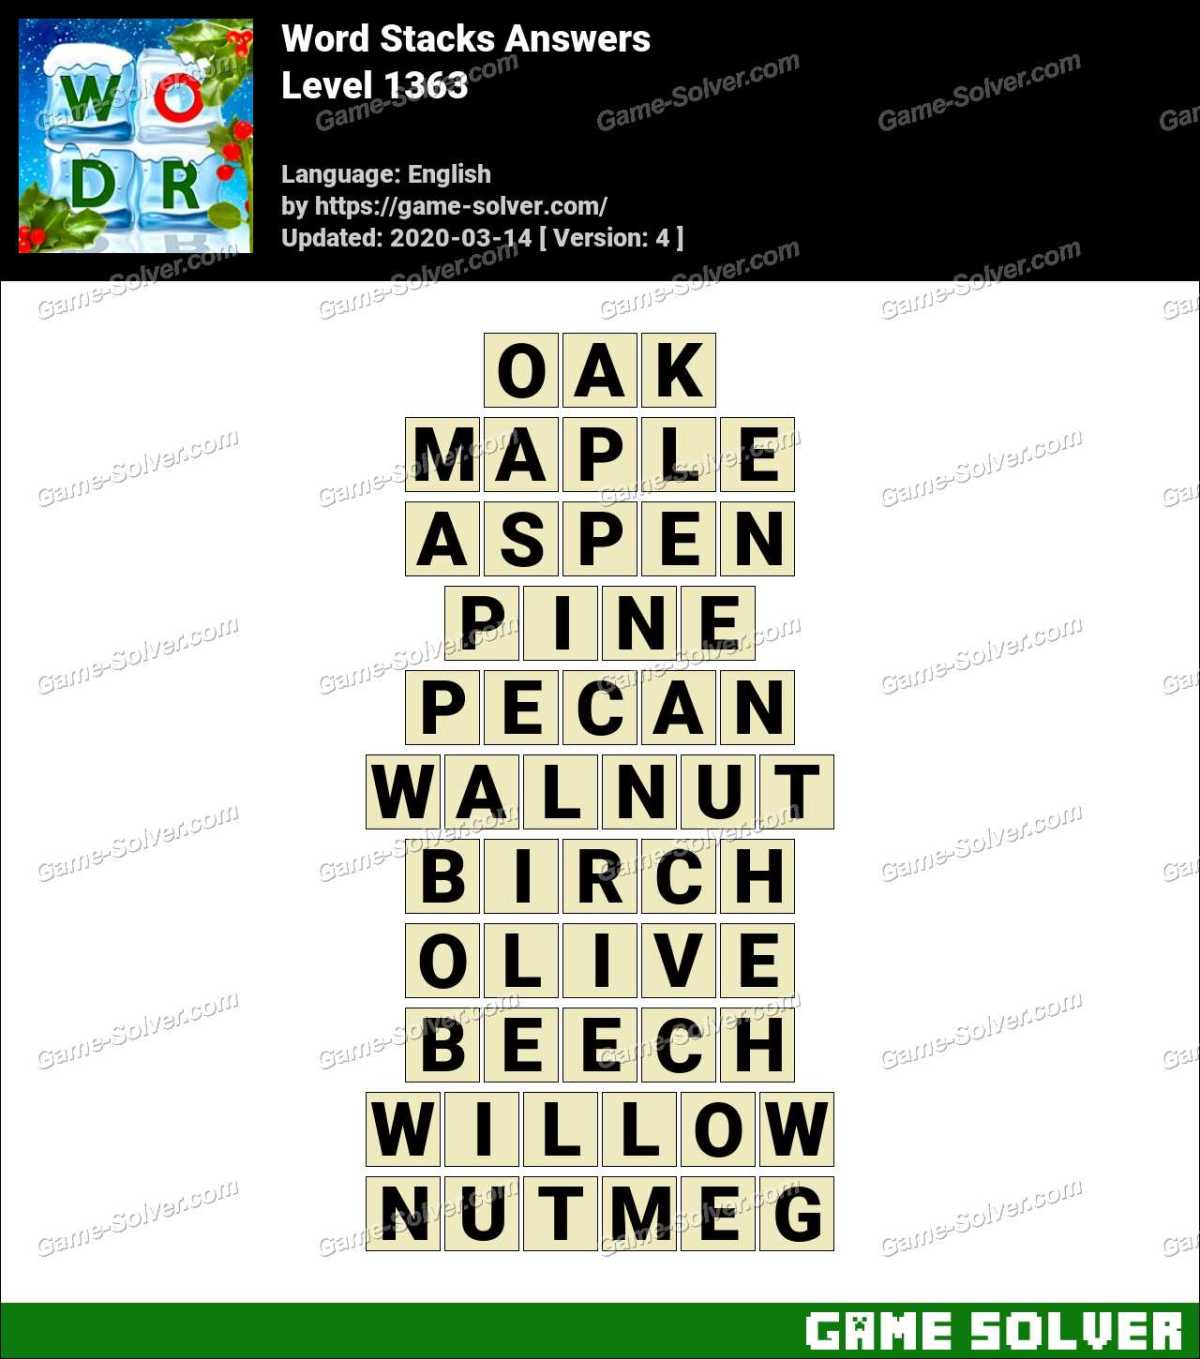 Word Stacks Level 1363 Answers